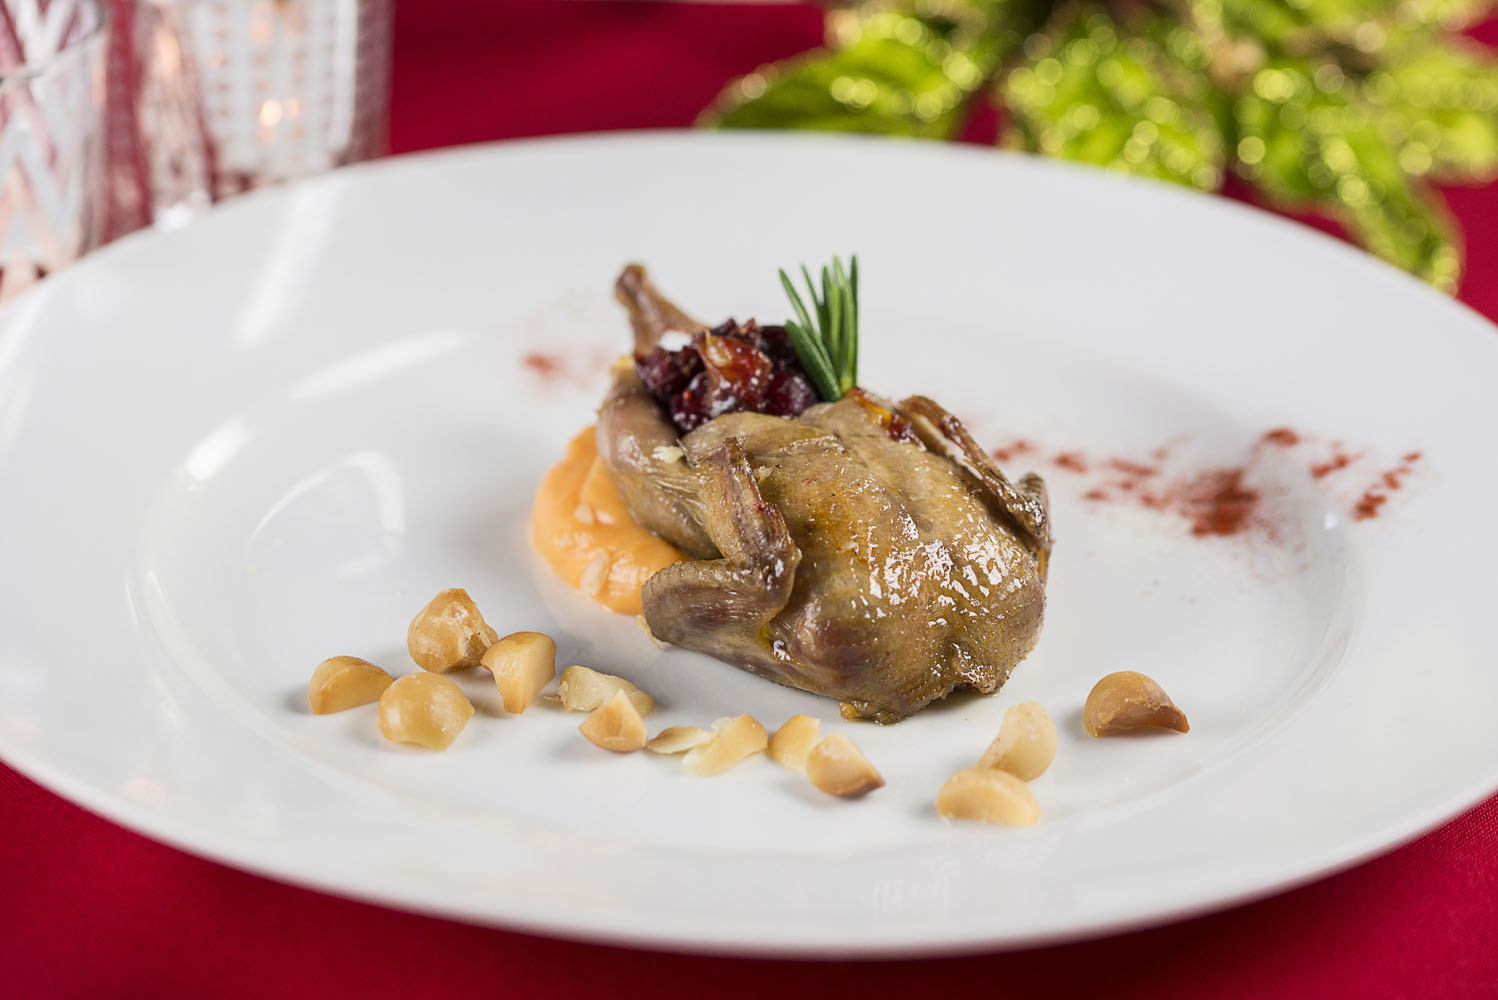 Quail Confit, whipped sweet potato, toasted macadamia nuts